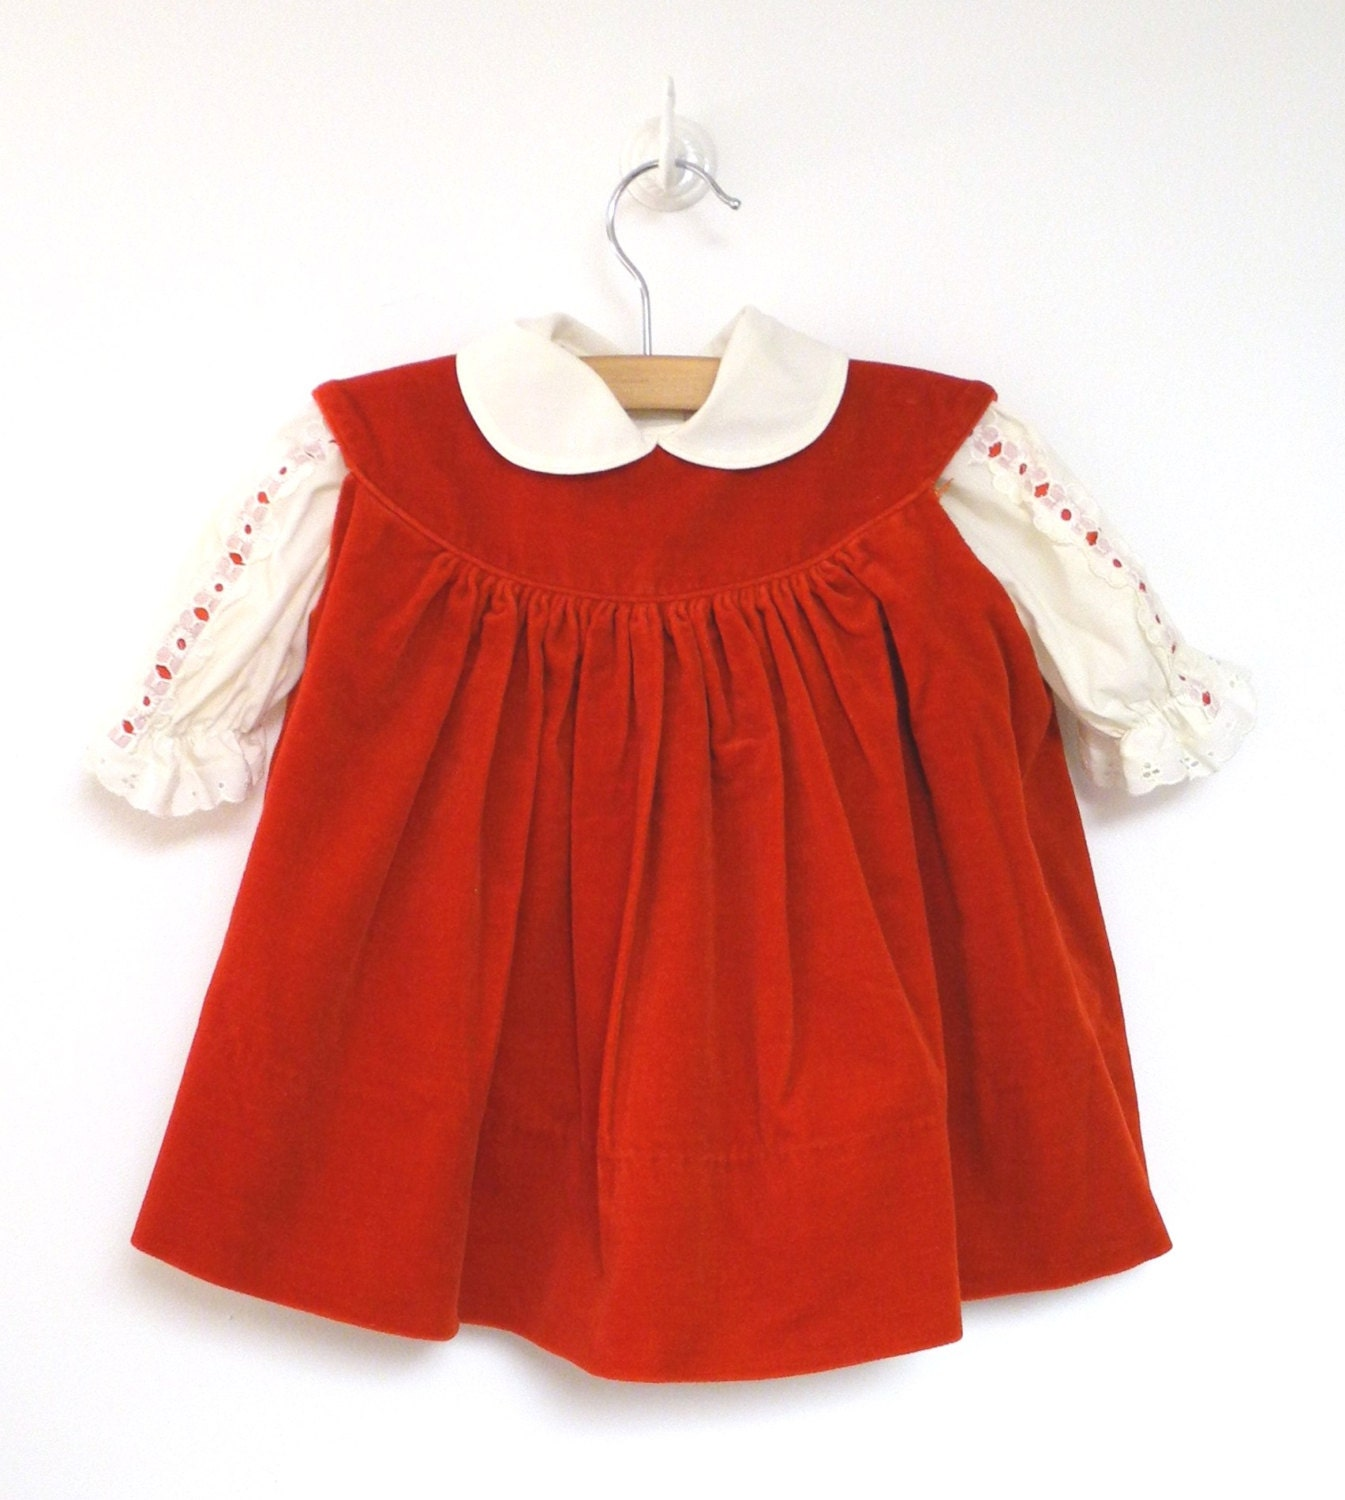 vintage baby clothes 1970's red and cream baby girl